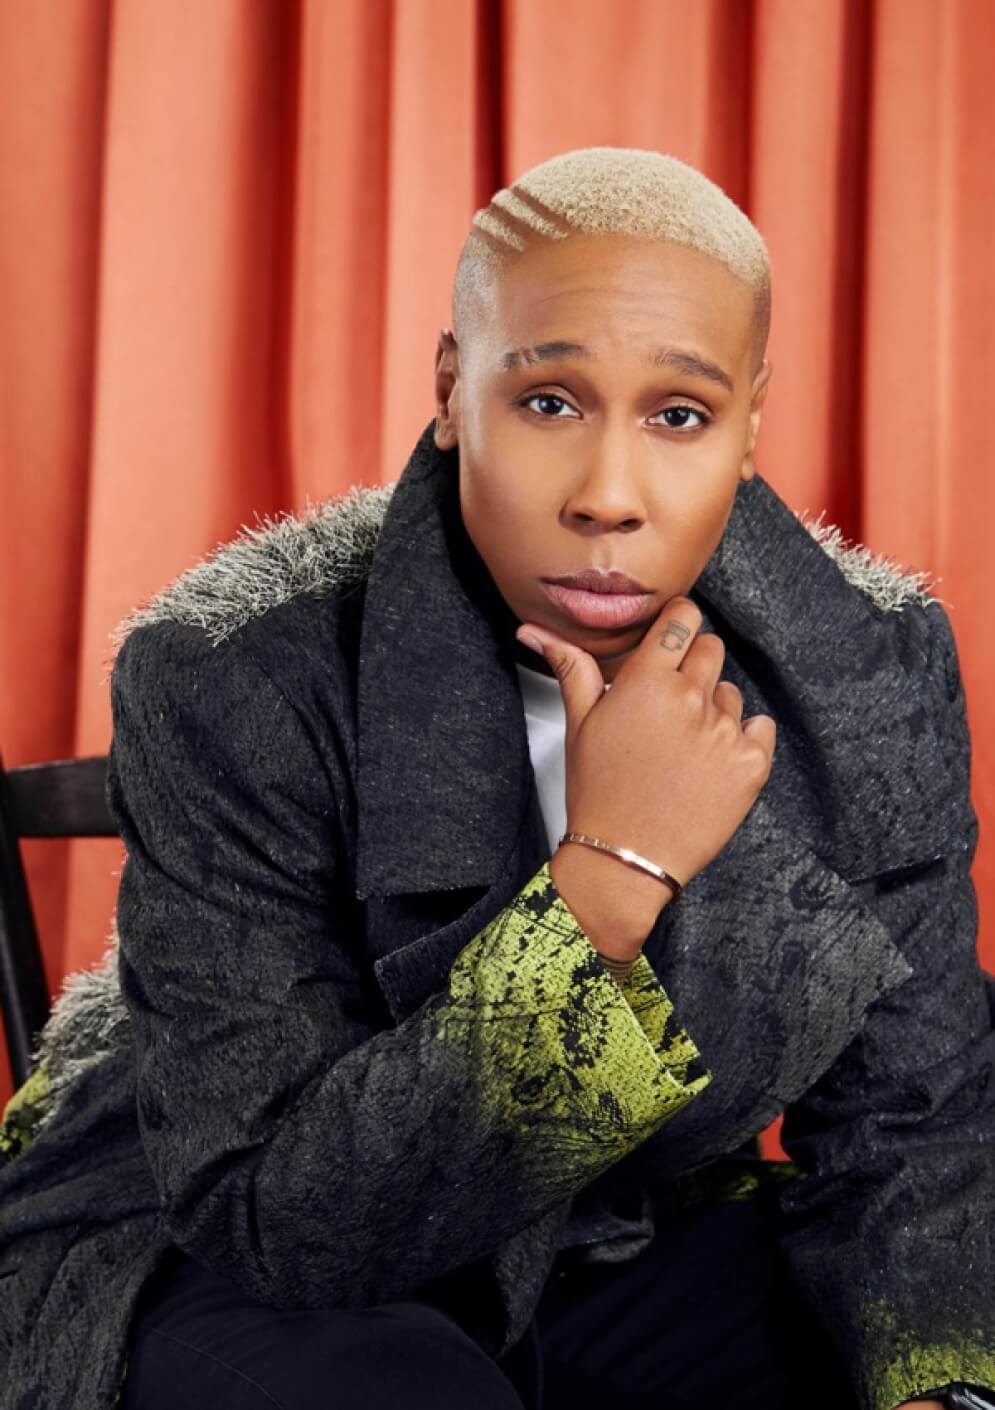 Her Thoughts - Queen & Slim': Through the Pages of Screenwriter Lena Waithe